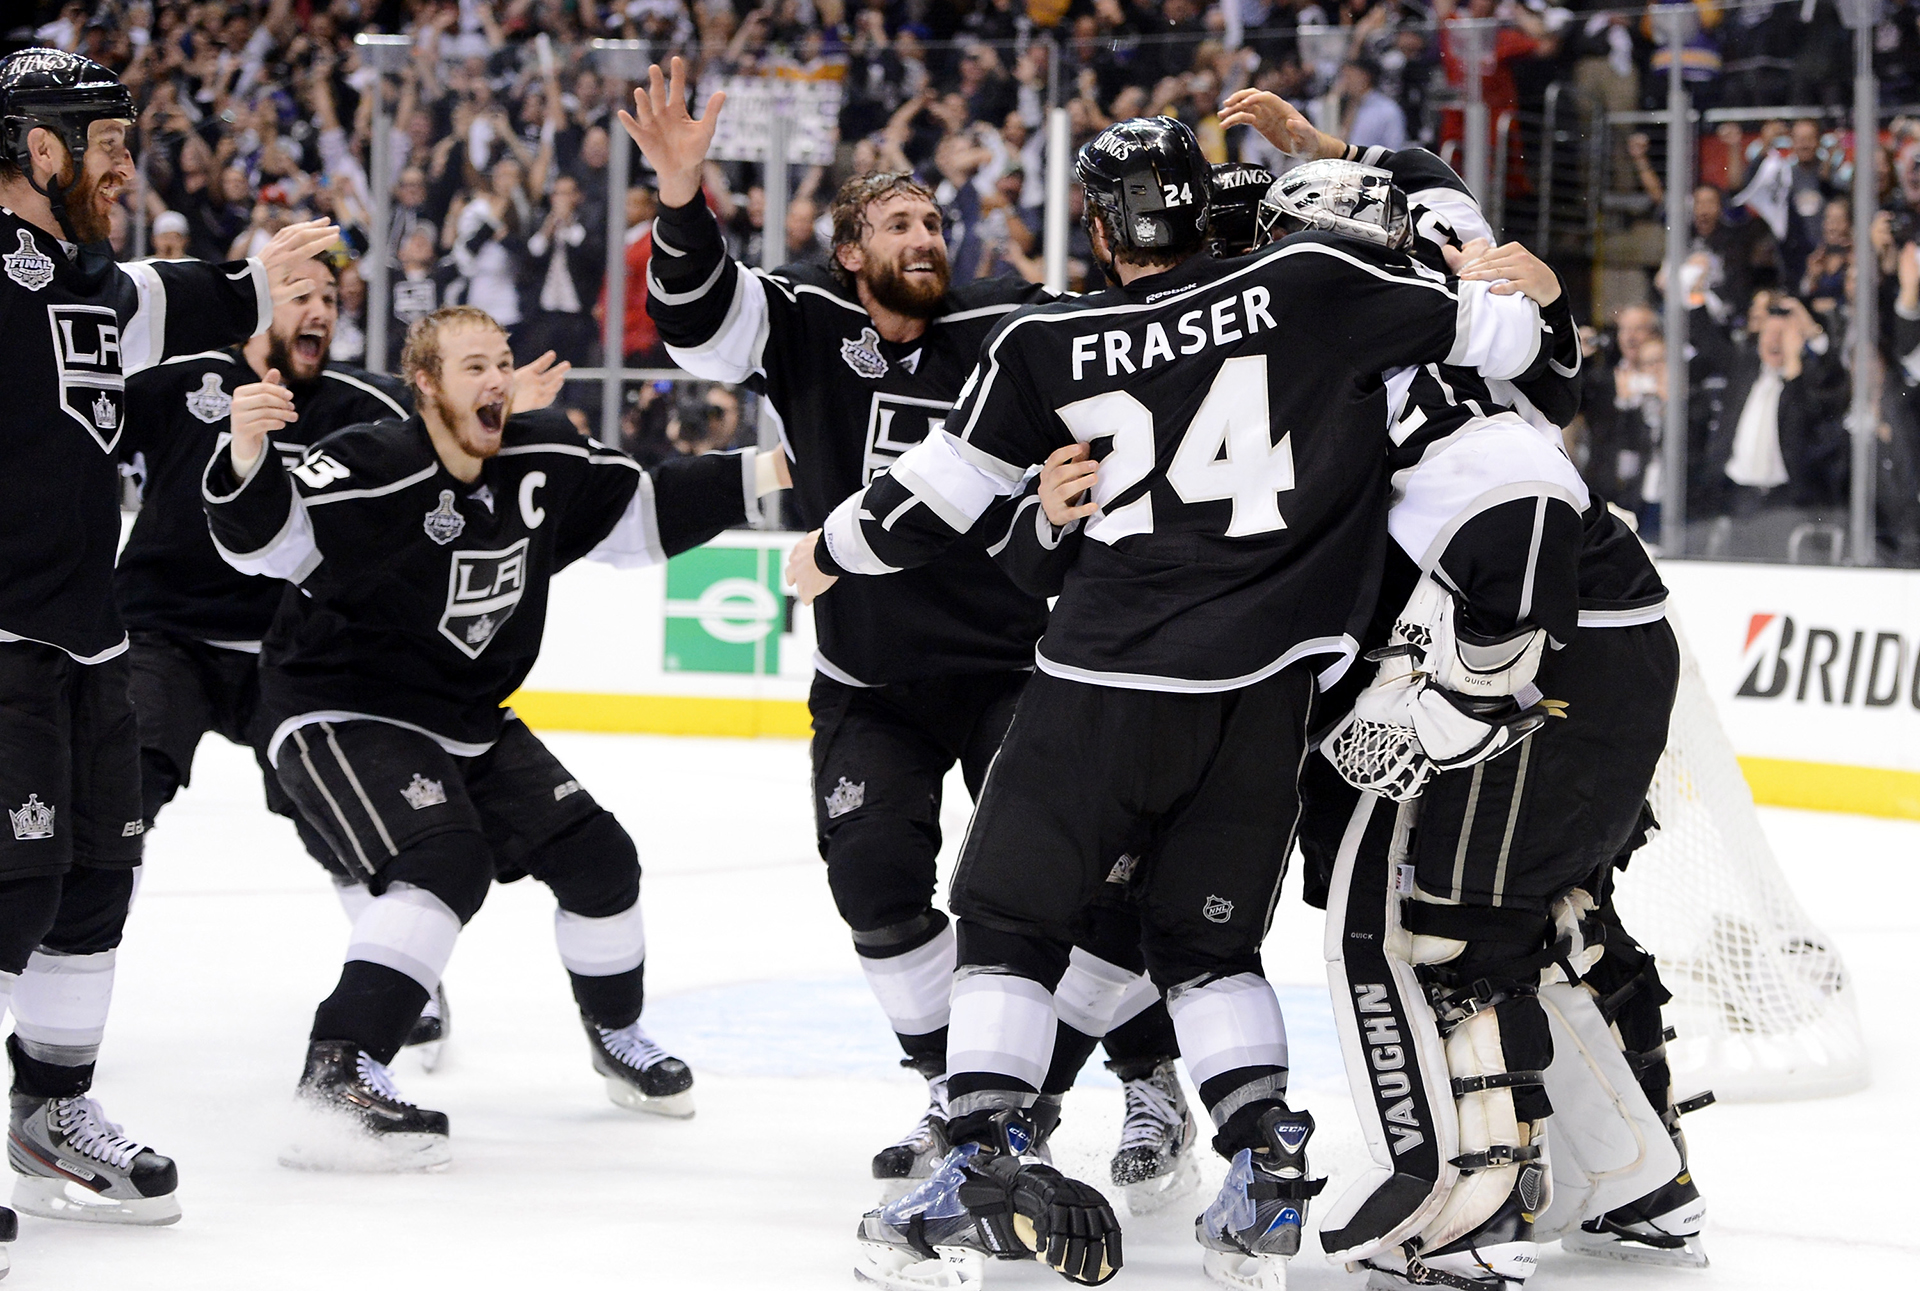 LOS ANGELES, CA - JUNE 11: (L-R) Rob Scuderi #7, Alec Martinez #27, captain Dustin Brown #23, Jarret Stoll #28, Colin Fraser #24, Drew Doughty #8 of the Los Angeles Kings surround goaltender Jonathan Quick #32 of the Los Angeles Kings after winning Game Six of the 2012 Stanley Cup Final 6-1 to win the series 4-2 at Staples Center on June 11, 2012 in Los Angeles, California. (Photo by Harry How/Getty Images)